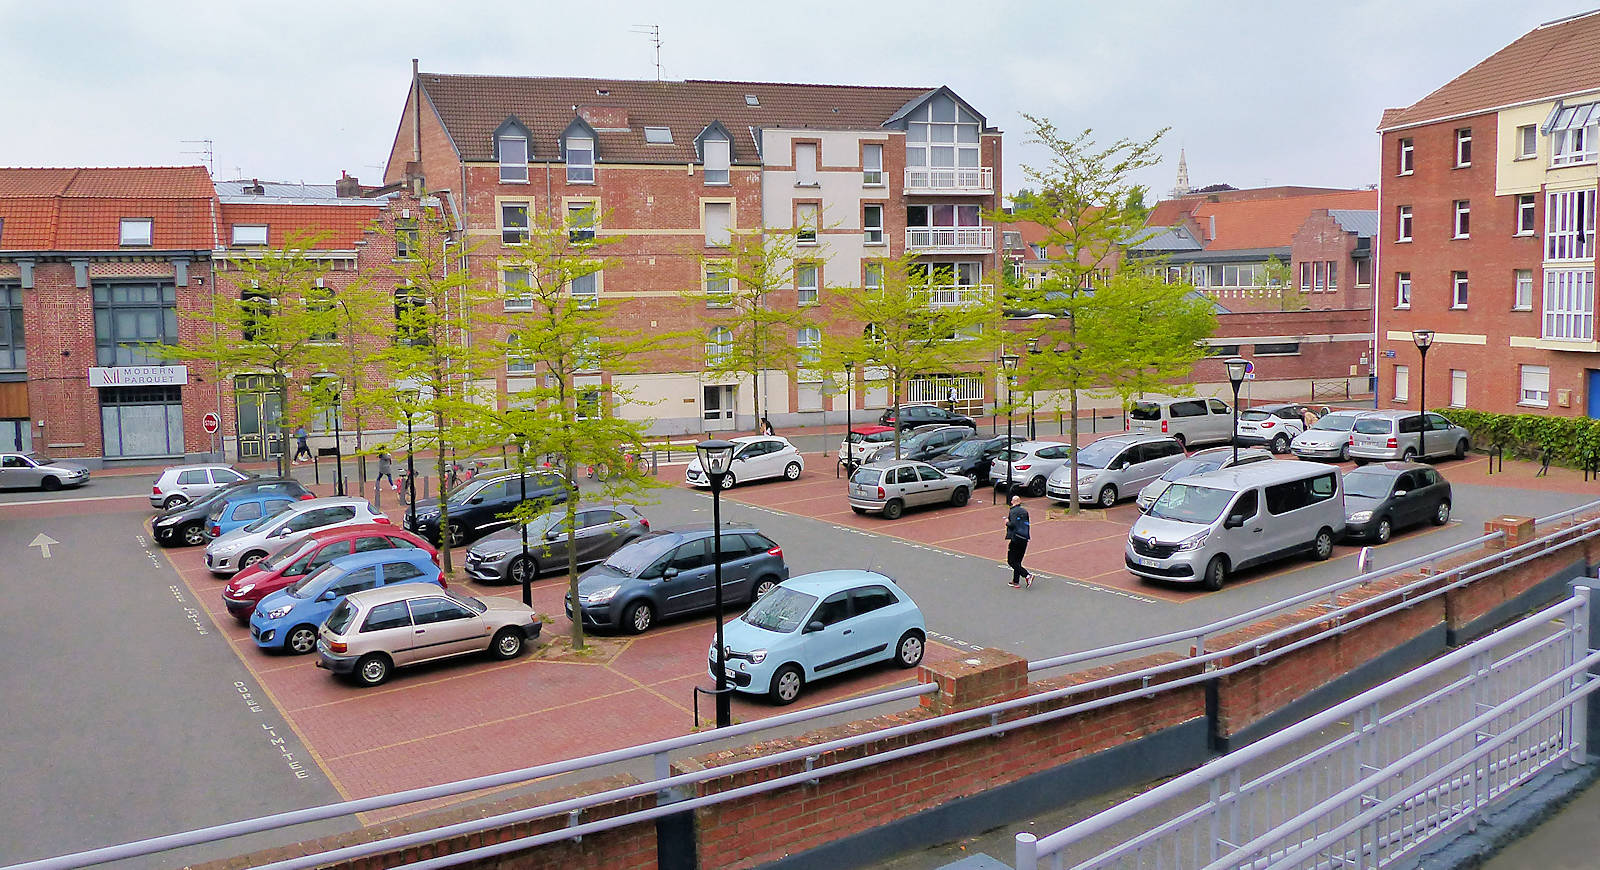 École Tourcoing - Parking CNDI, rue des Anges, Tourcoing